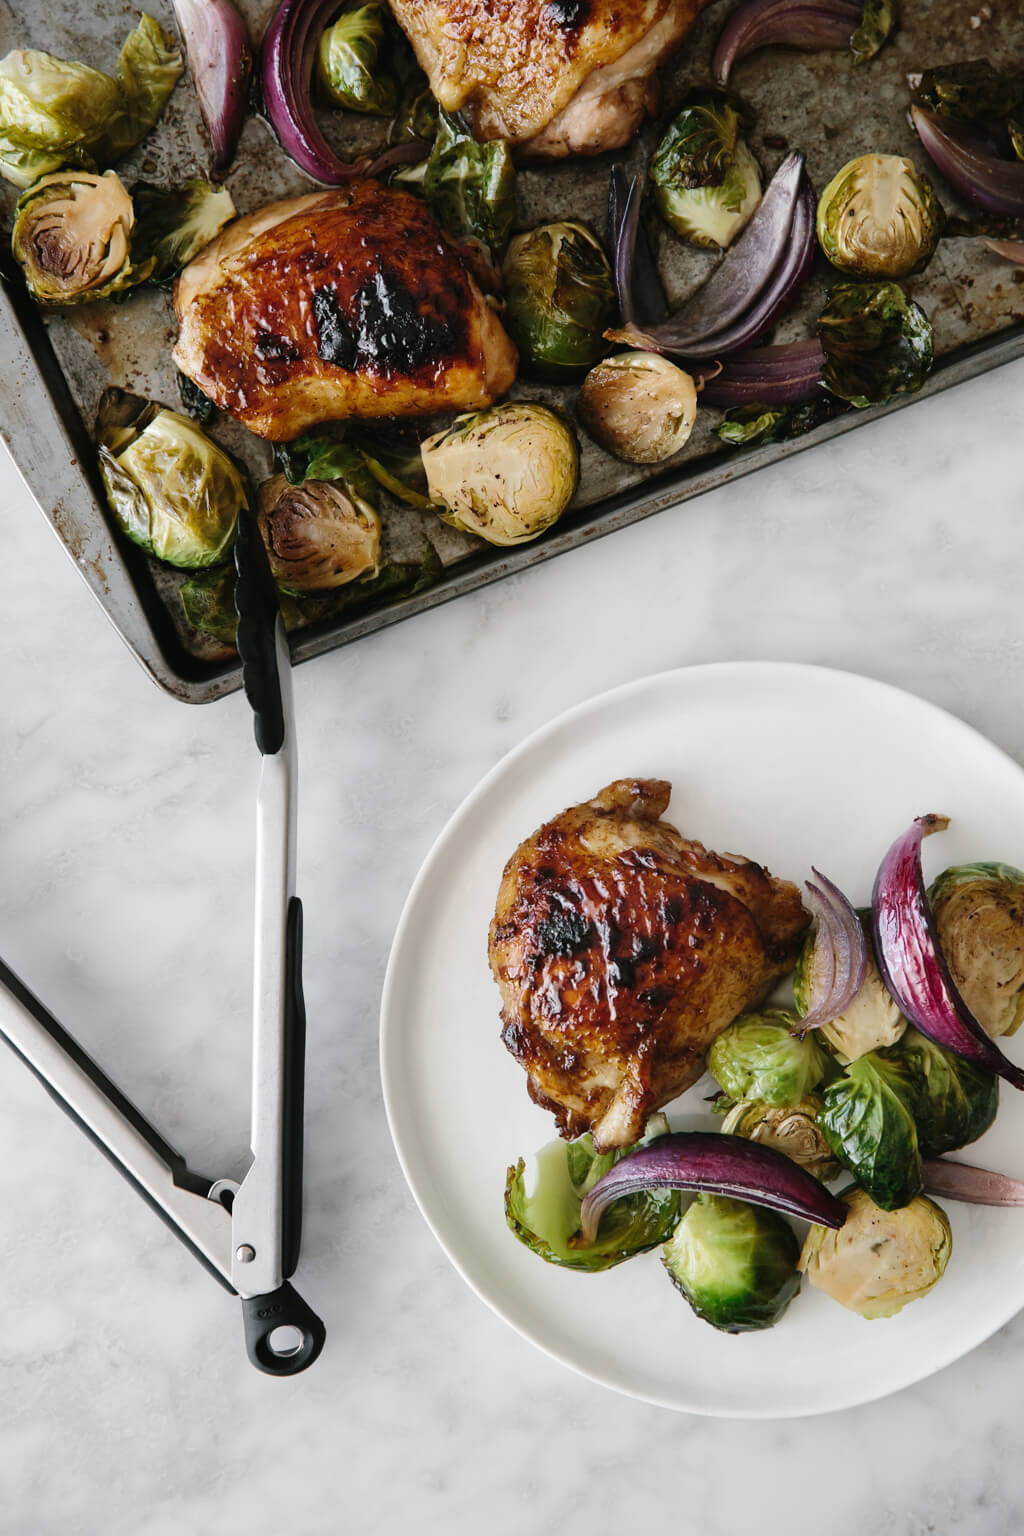 Roasted Balsamic Chicken With Brussels Sprouts